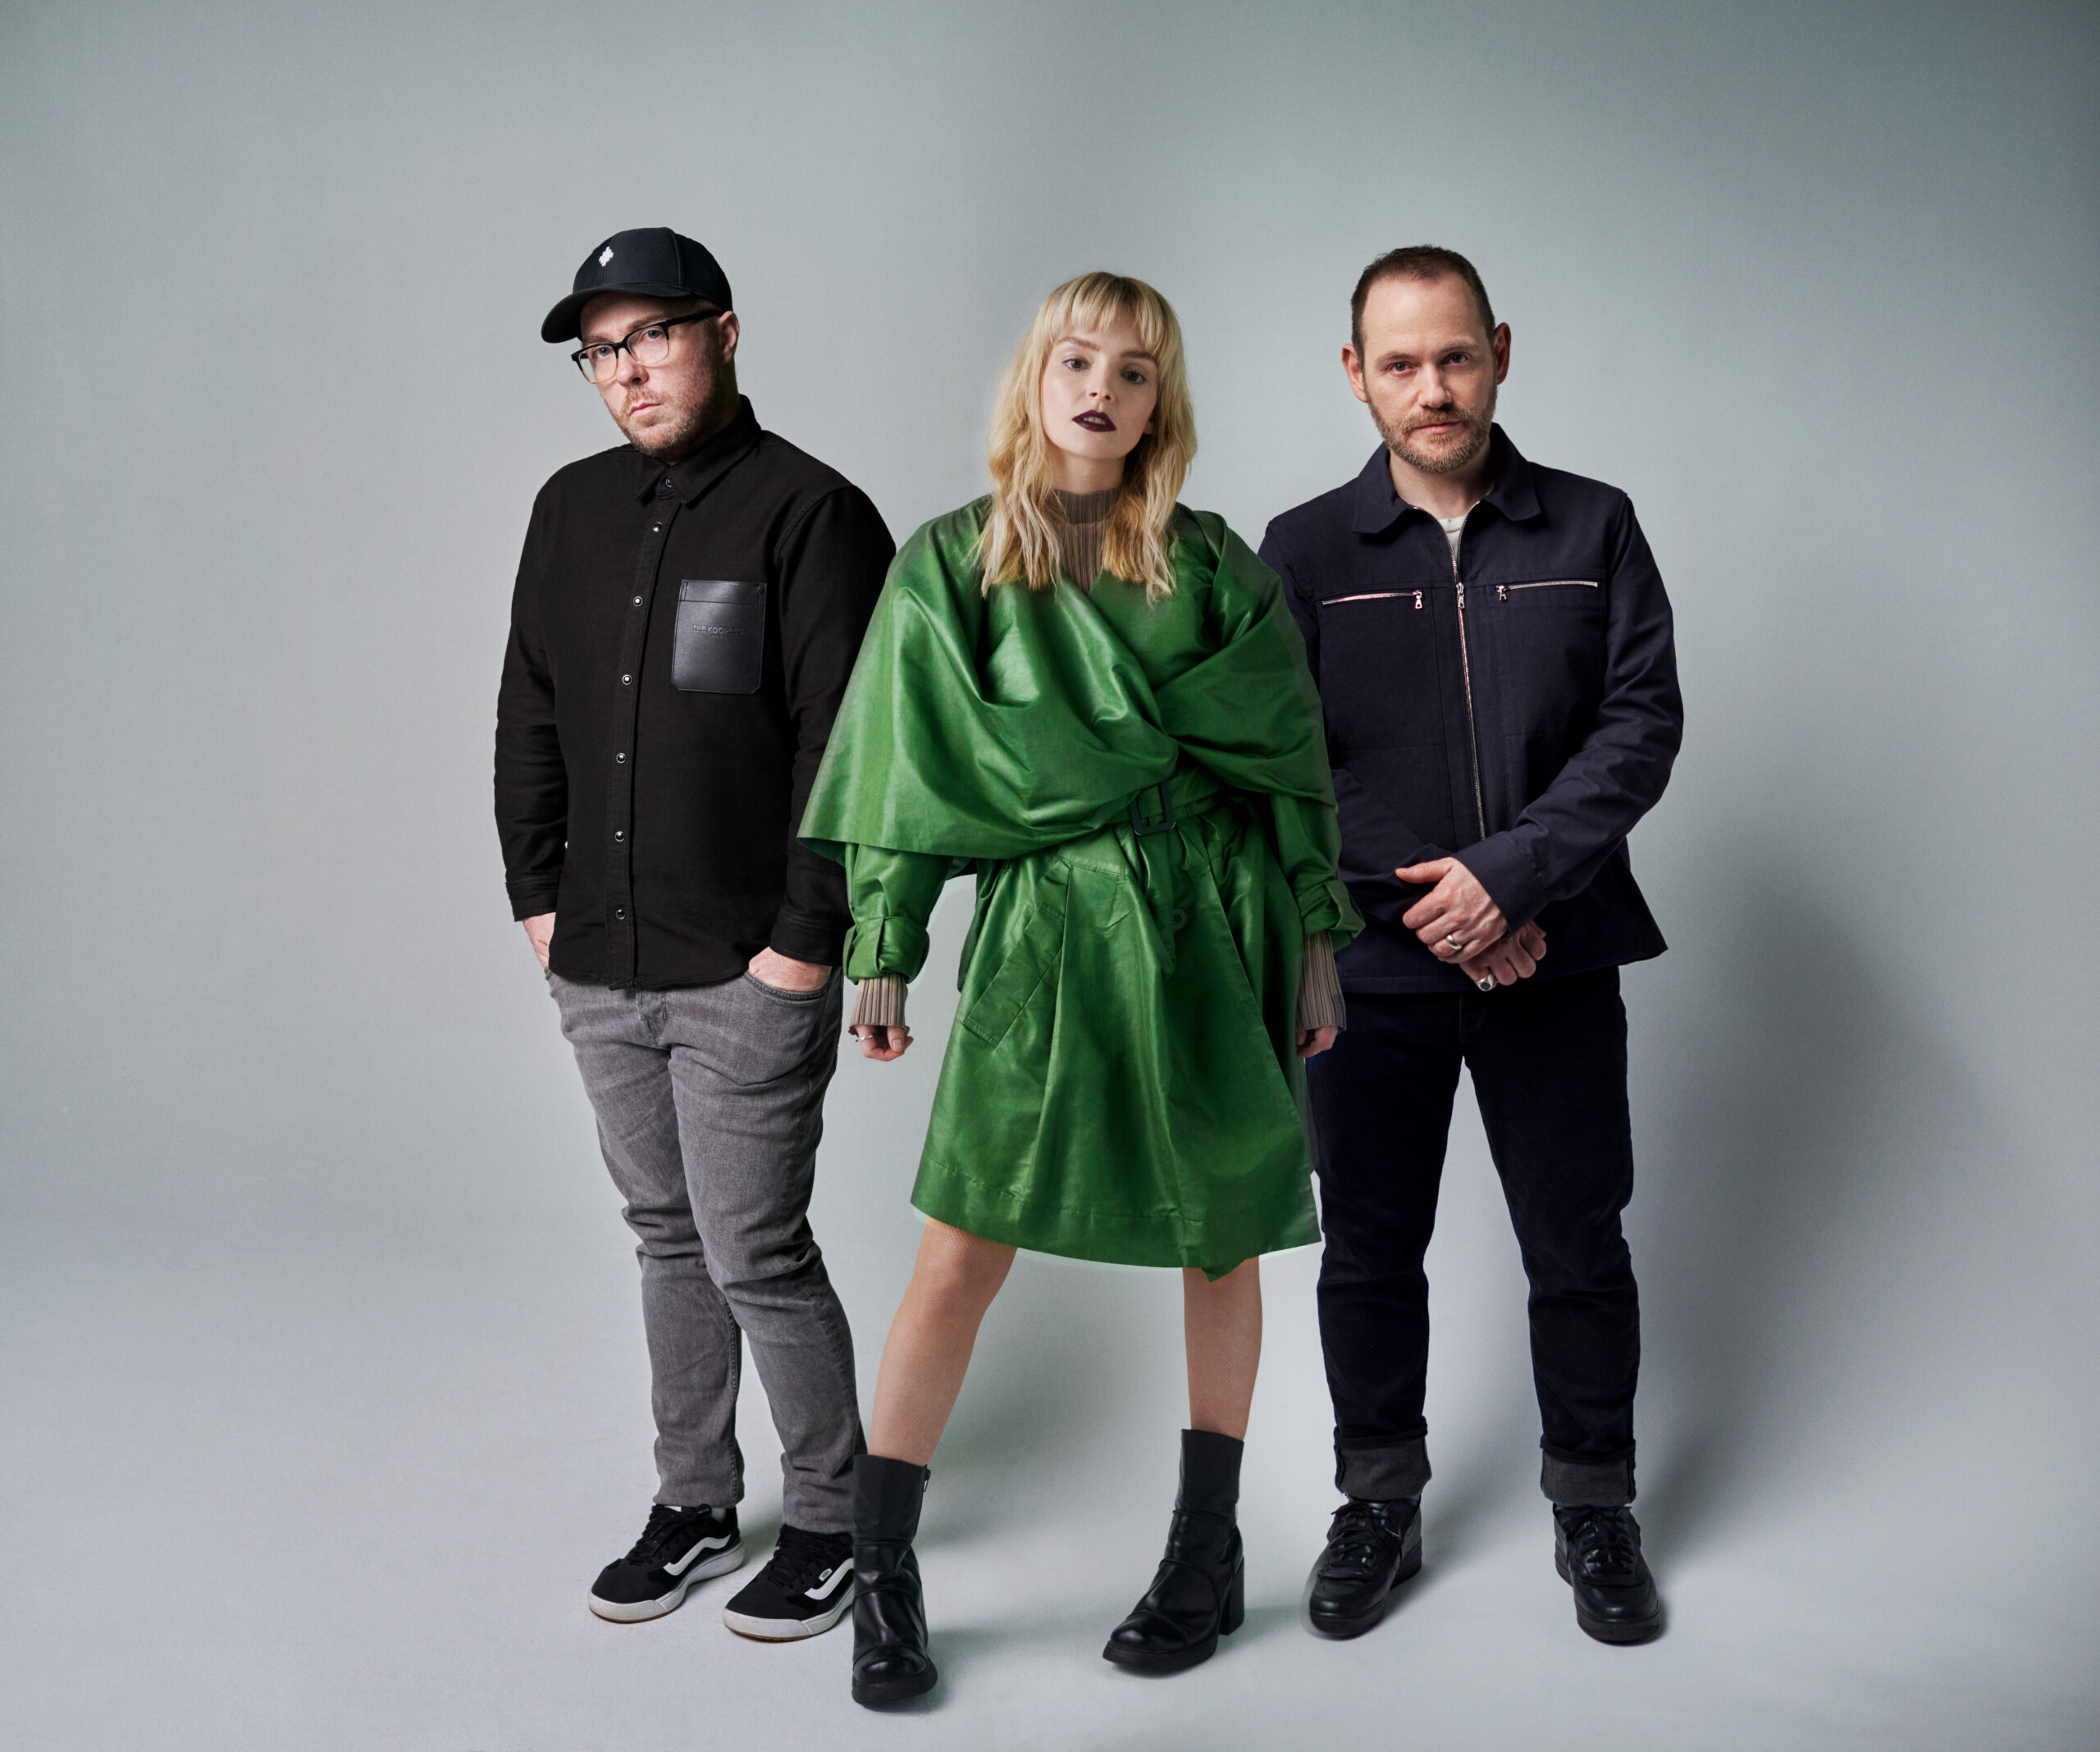 CHVRCHES ANNOUNCE NEW ALBUM SCREEN VIOLENCE + SHARE NEW SINGLE 'HOW NOT TO DROWN (FEAT. ROBERT SMITH)'